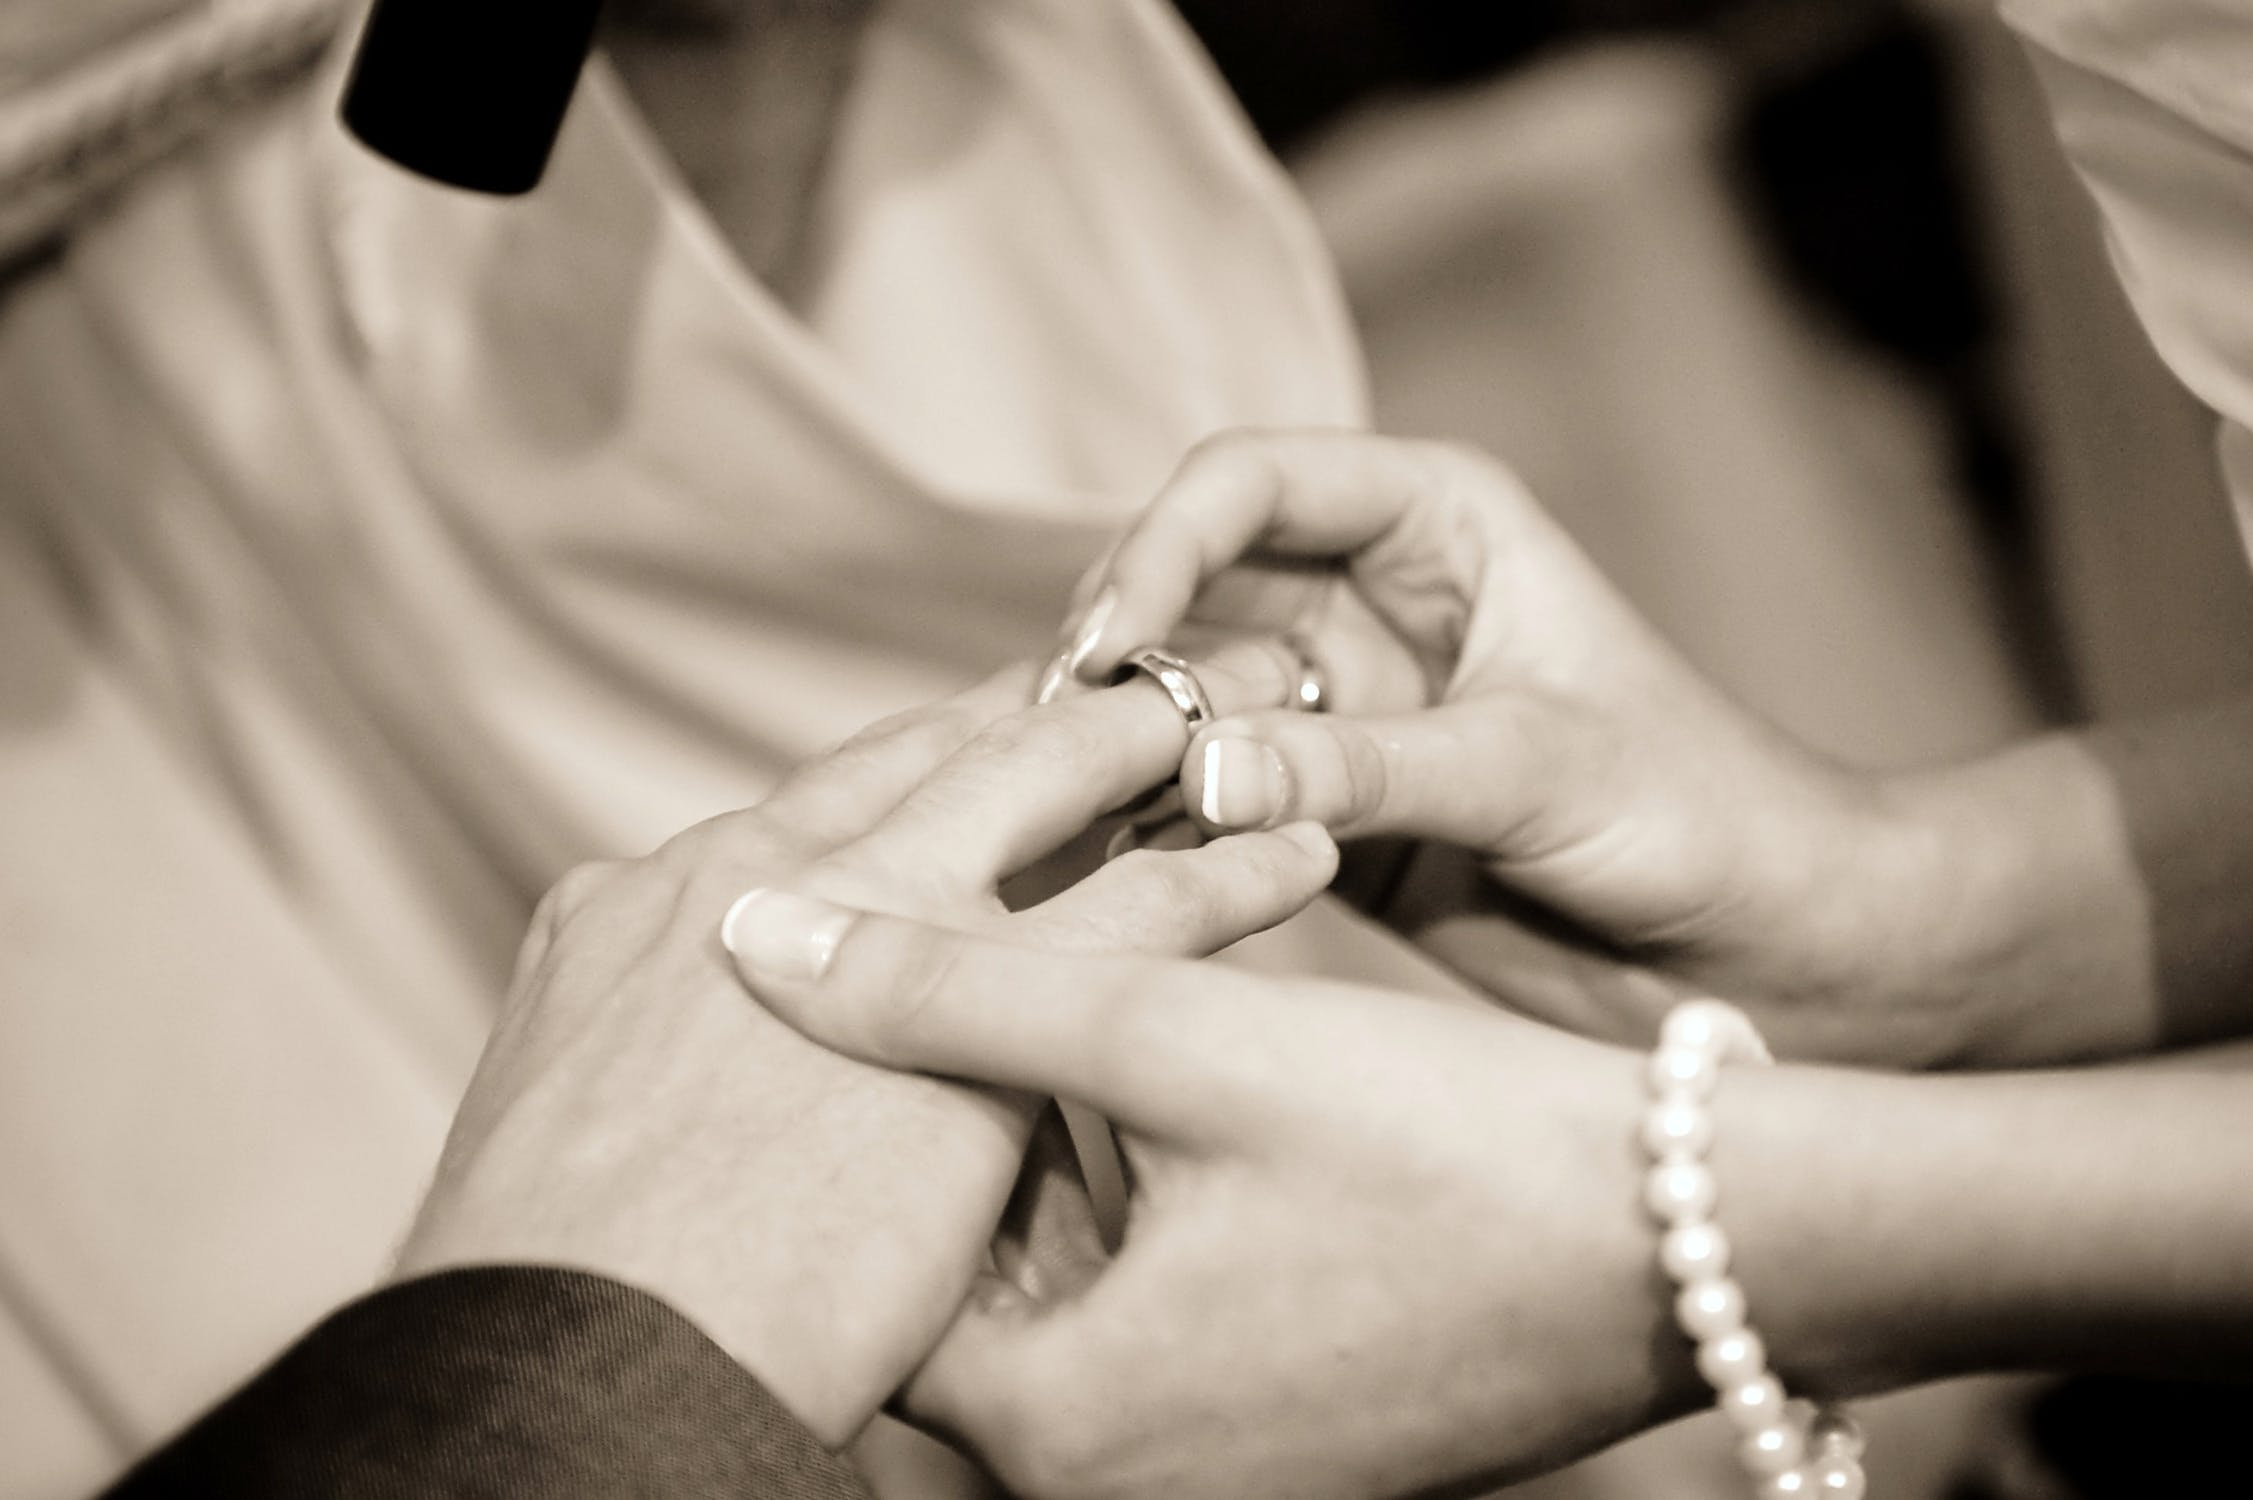 Stock photo of bride placing wedding ring on groom's finger.